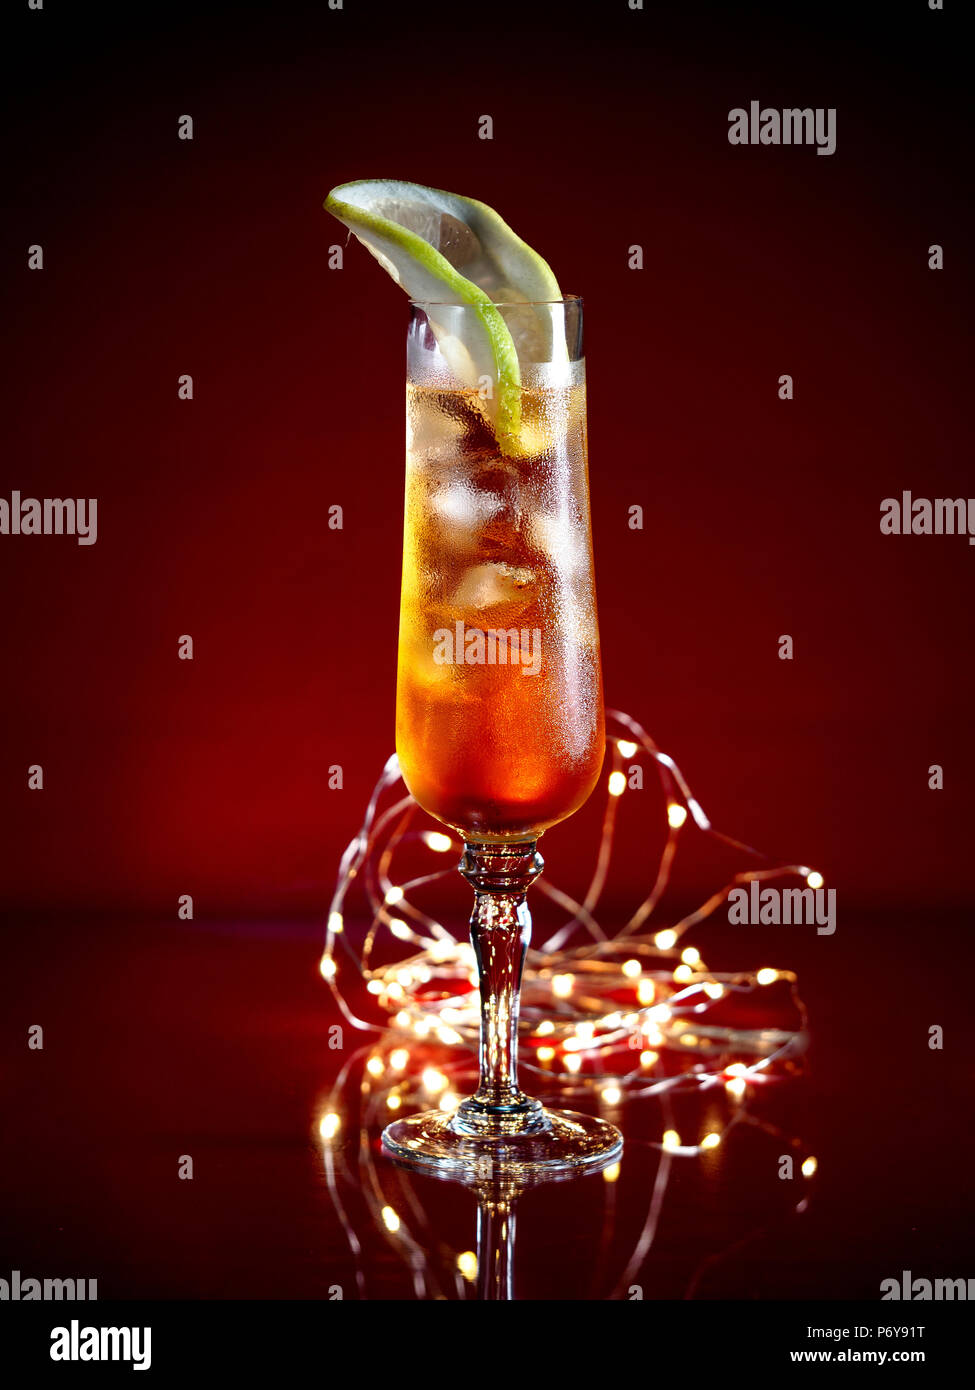 Aperol Spritz garnished with a grapefruit slice served in a tall glass on a dark background with festive lights - Stock Image